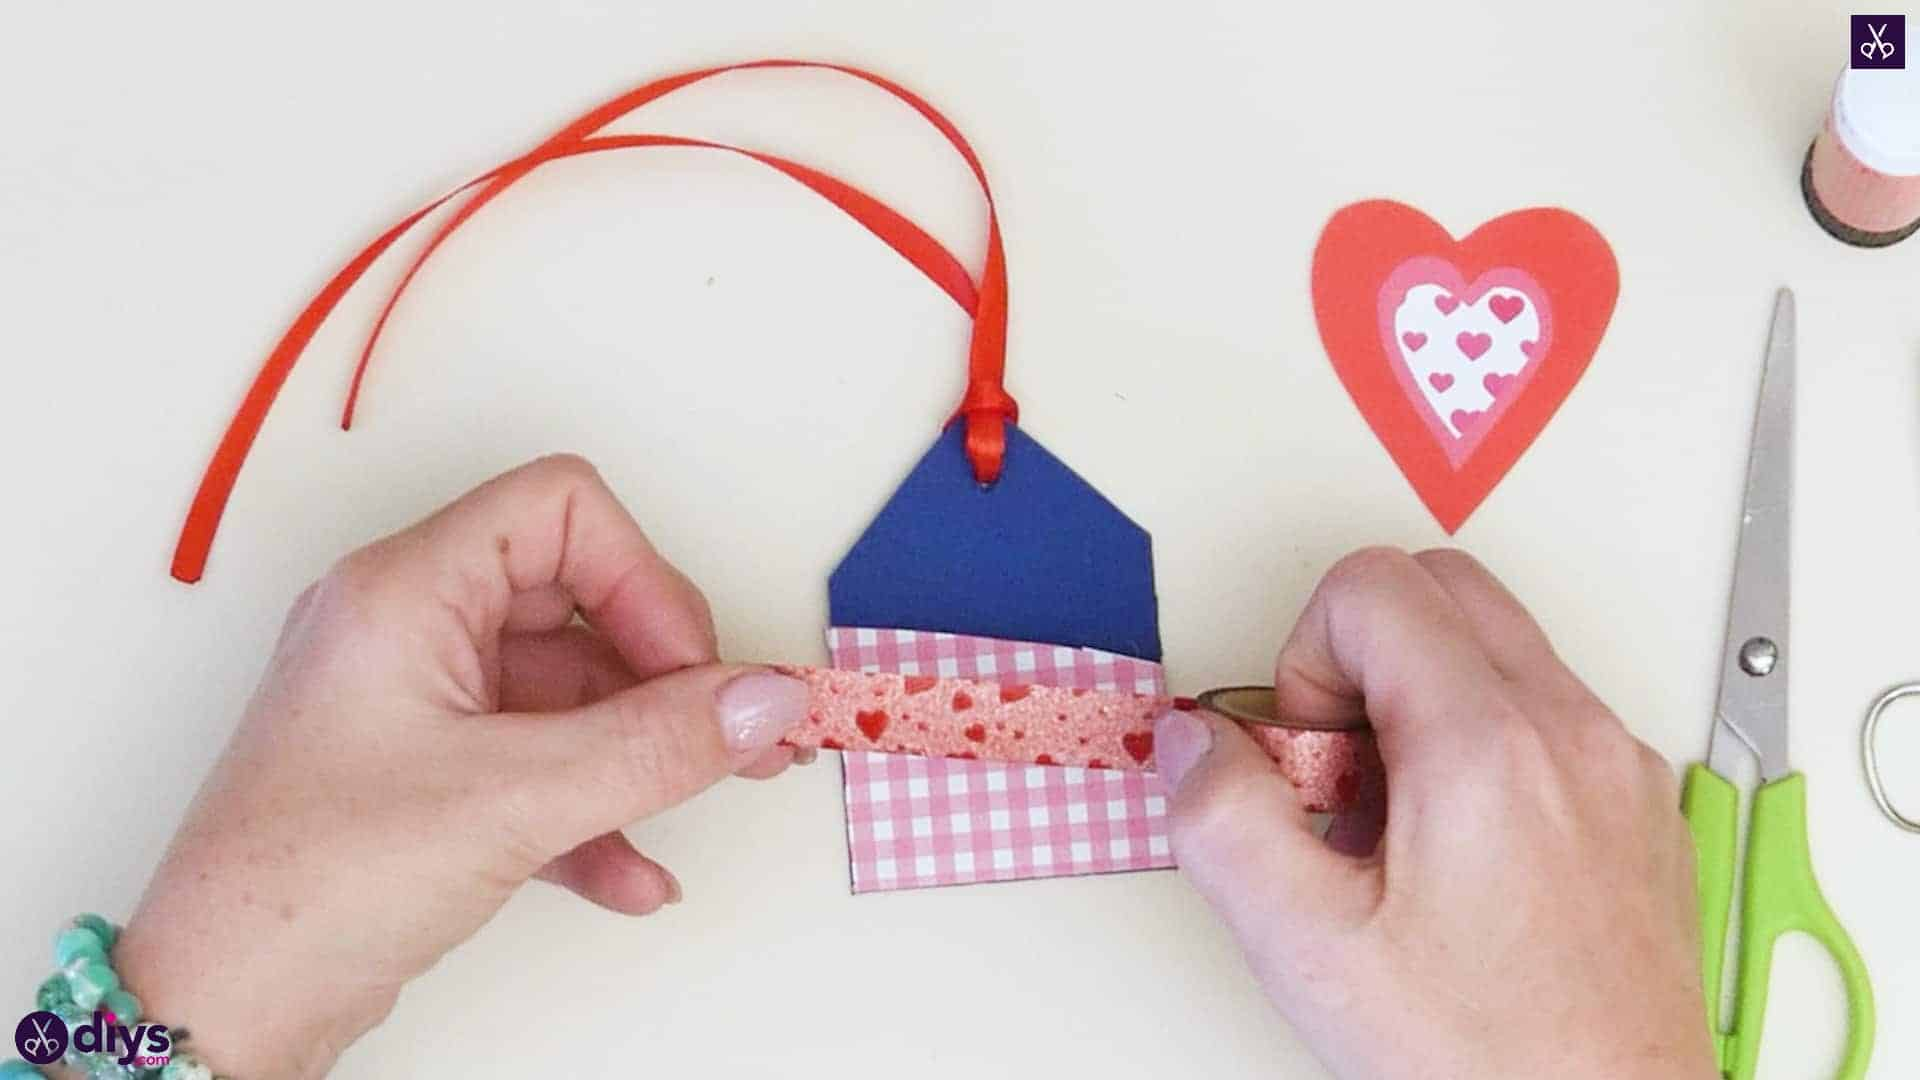 Diy pocketed gift tags step 9